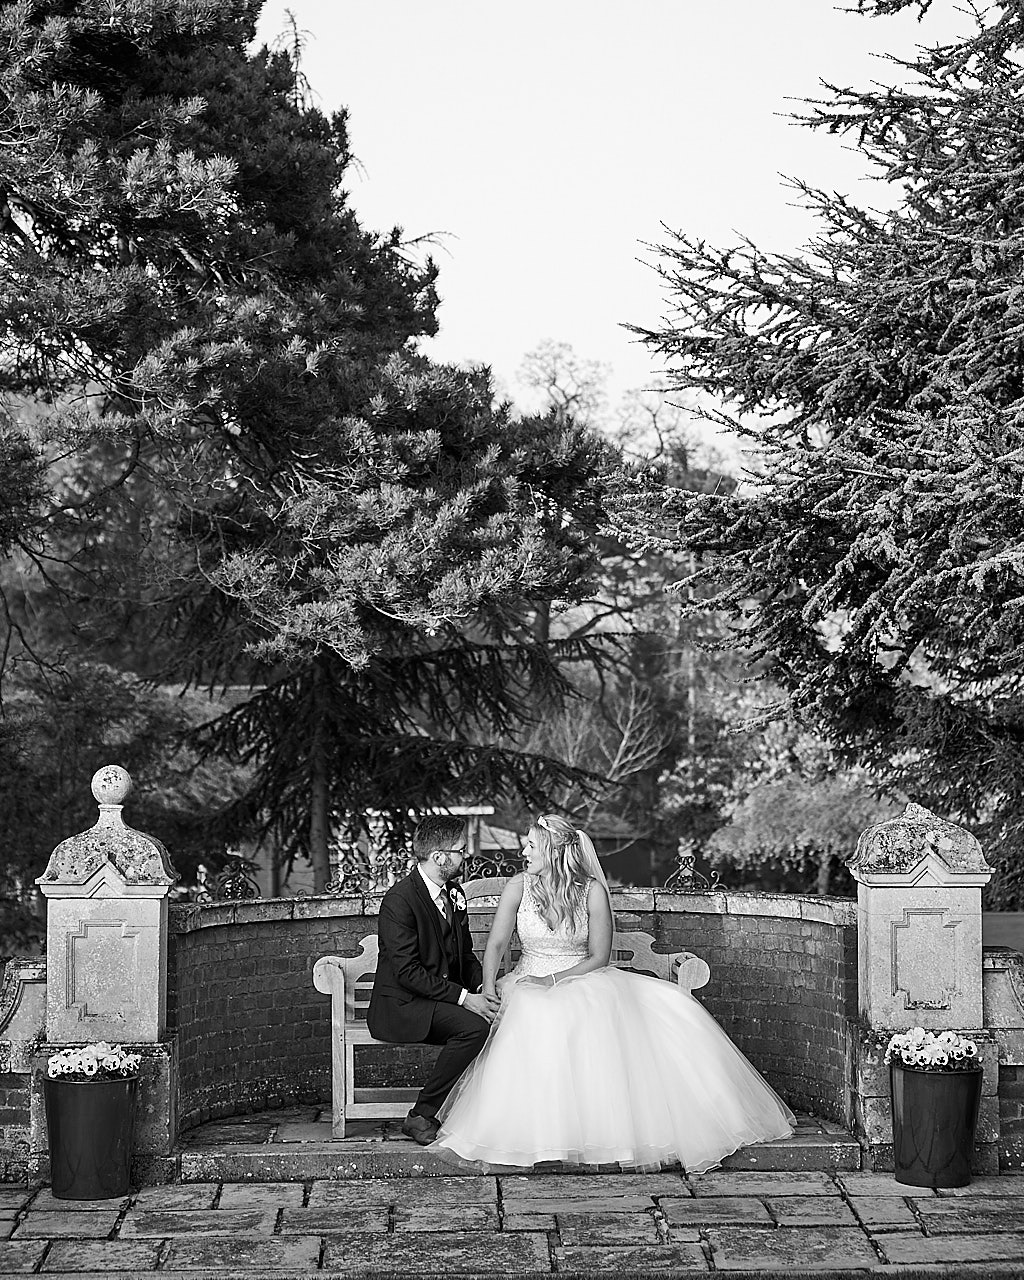 A wedding at Kenwick Park Hotel Louth,. The bride & groom sit in the grounds.